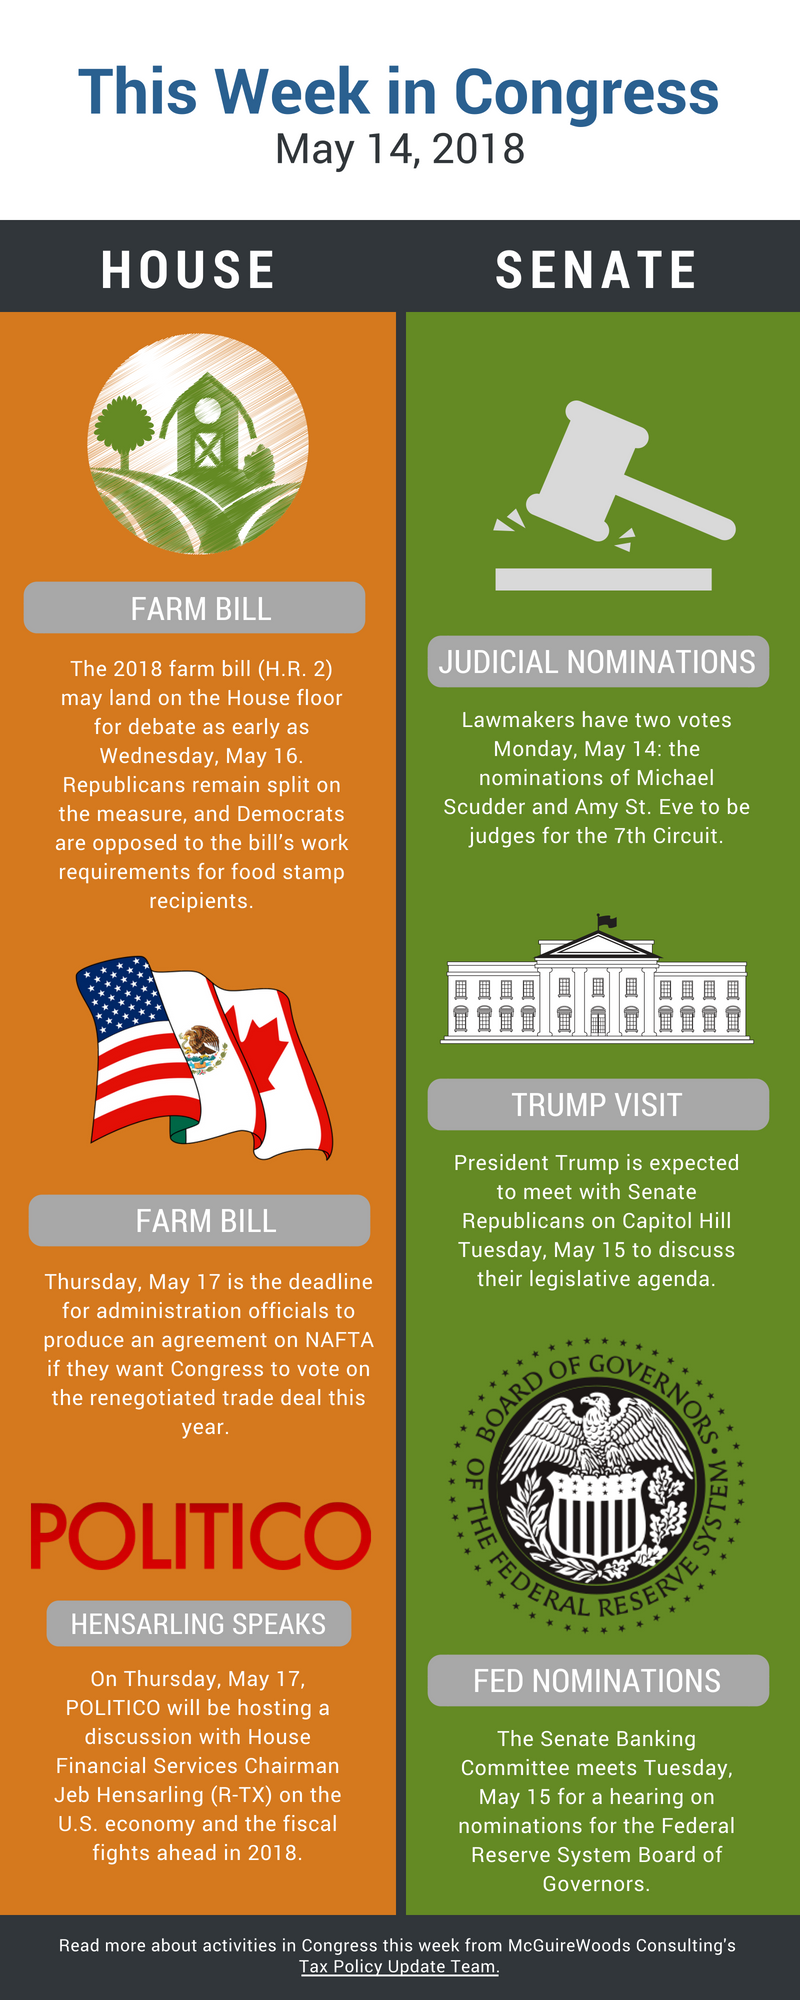 This week in Congress: May 14, 2018